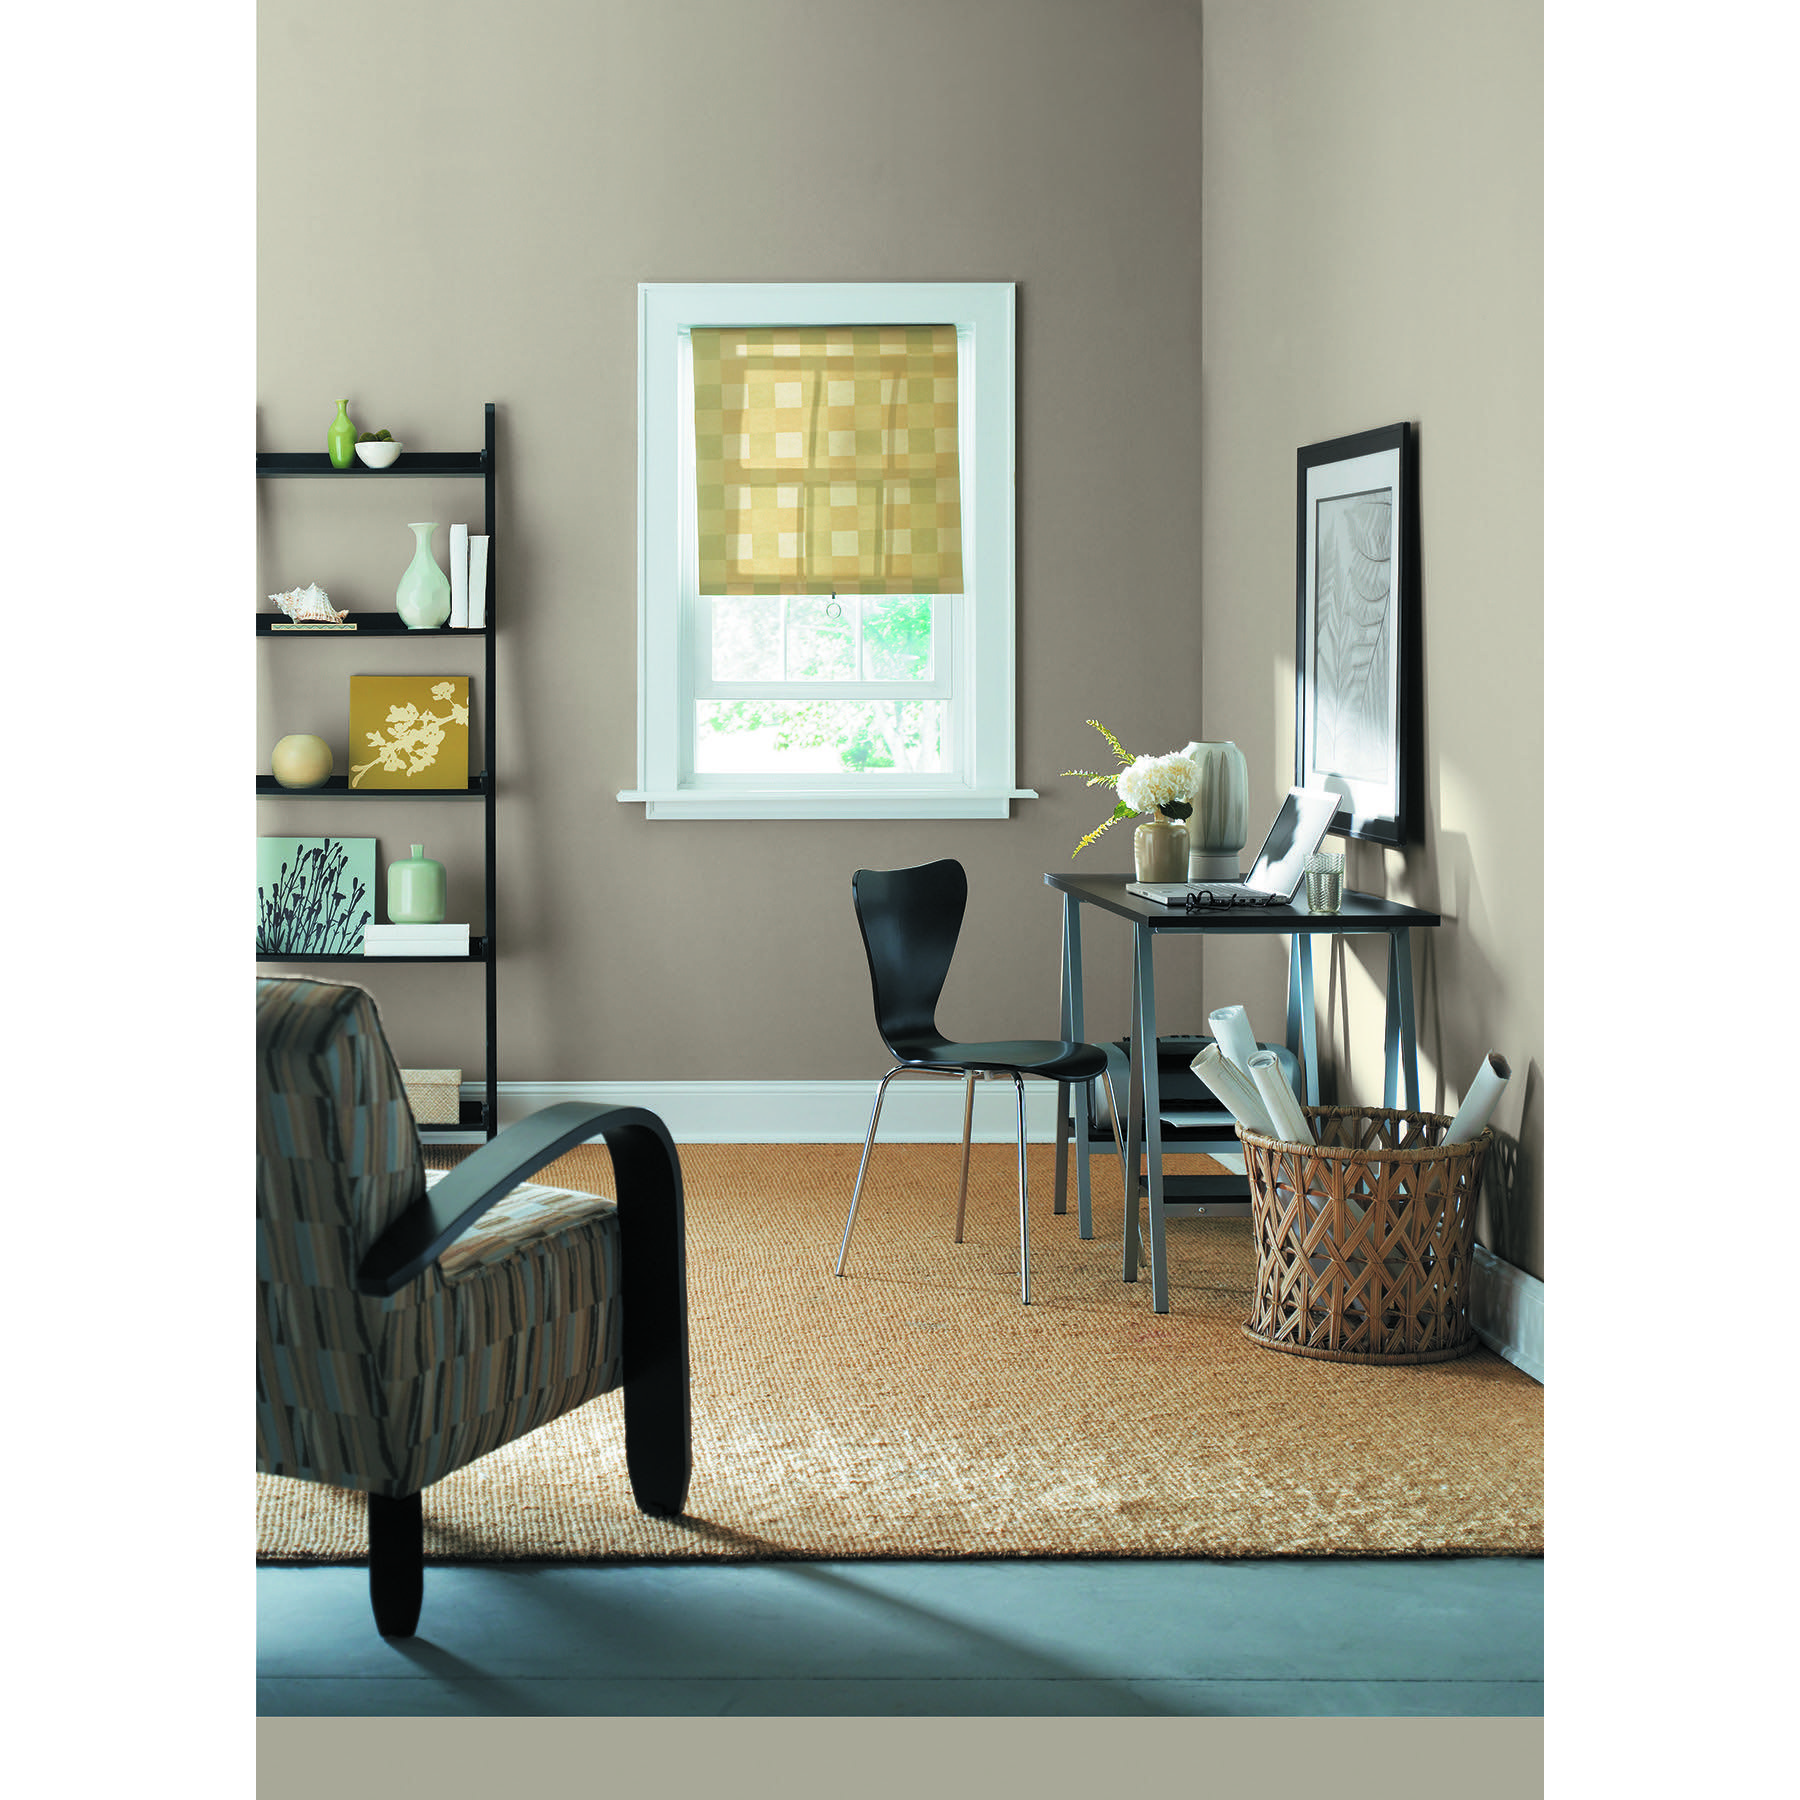 Eight Paint Colors That Will Stand The Test Of Time In 2020 Greige Living Room Brown Decor Home #perfect #greige #living #room